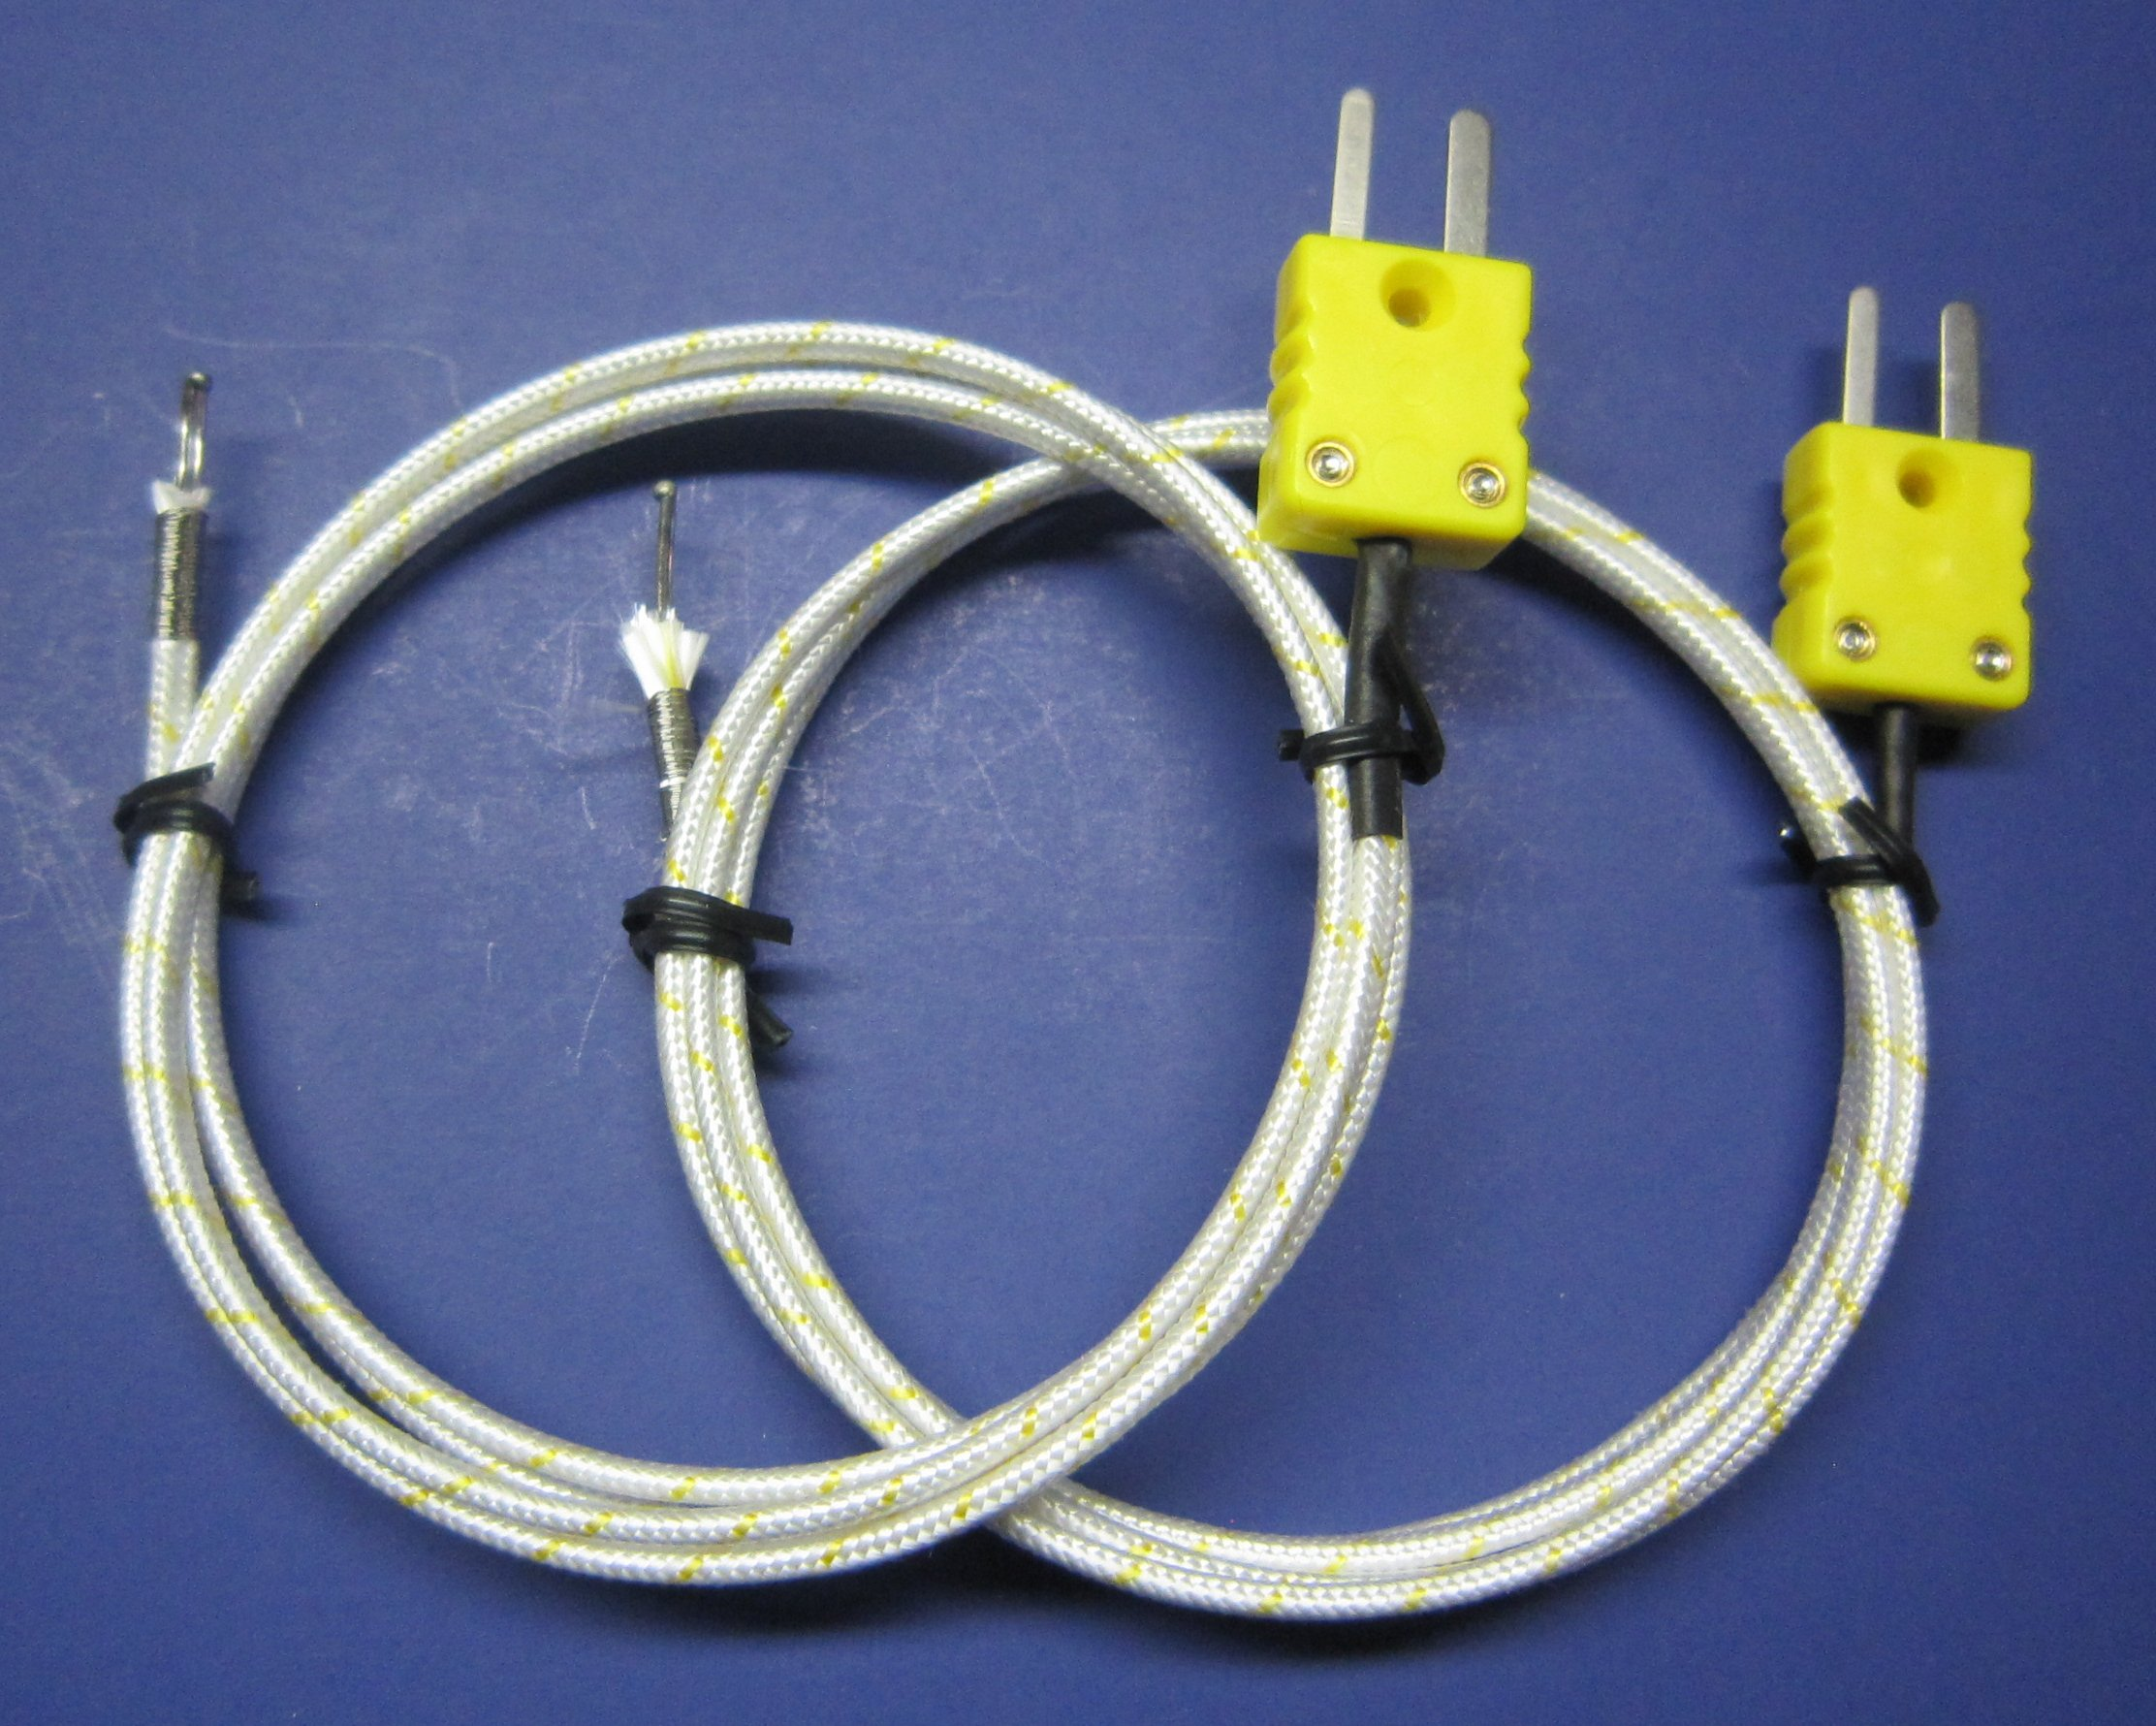 K-Type Thermocouple PK-1000 Temperature Sensor Probe w. High Temperature Fiber Insulation 1832F or 1000C (Set of 2)